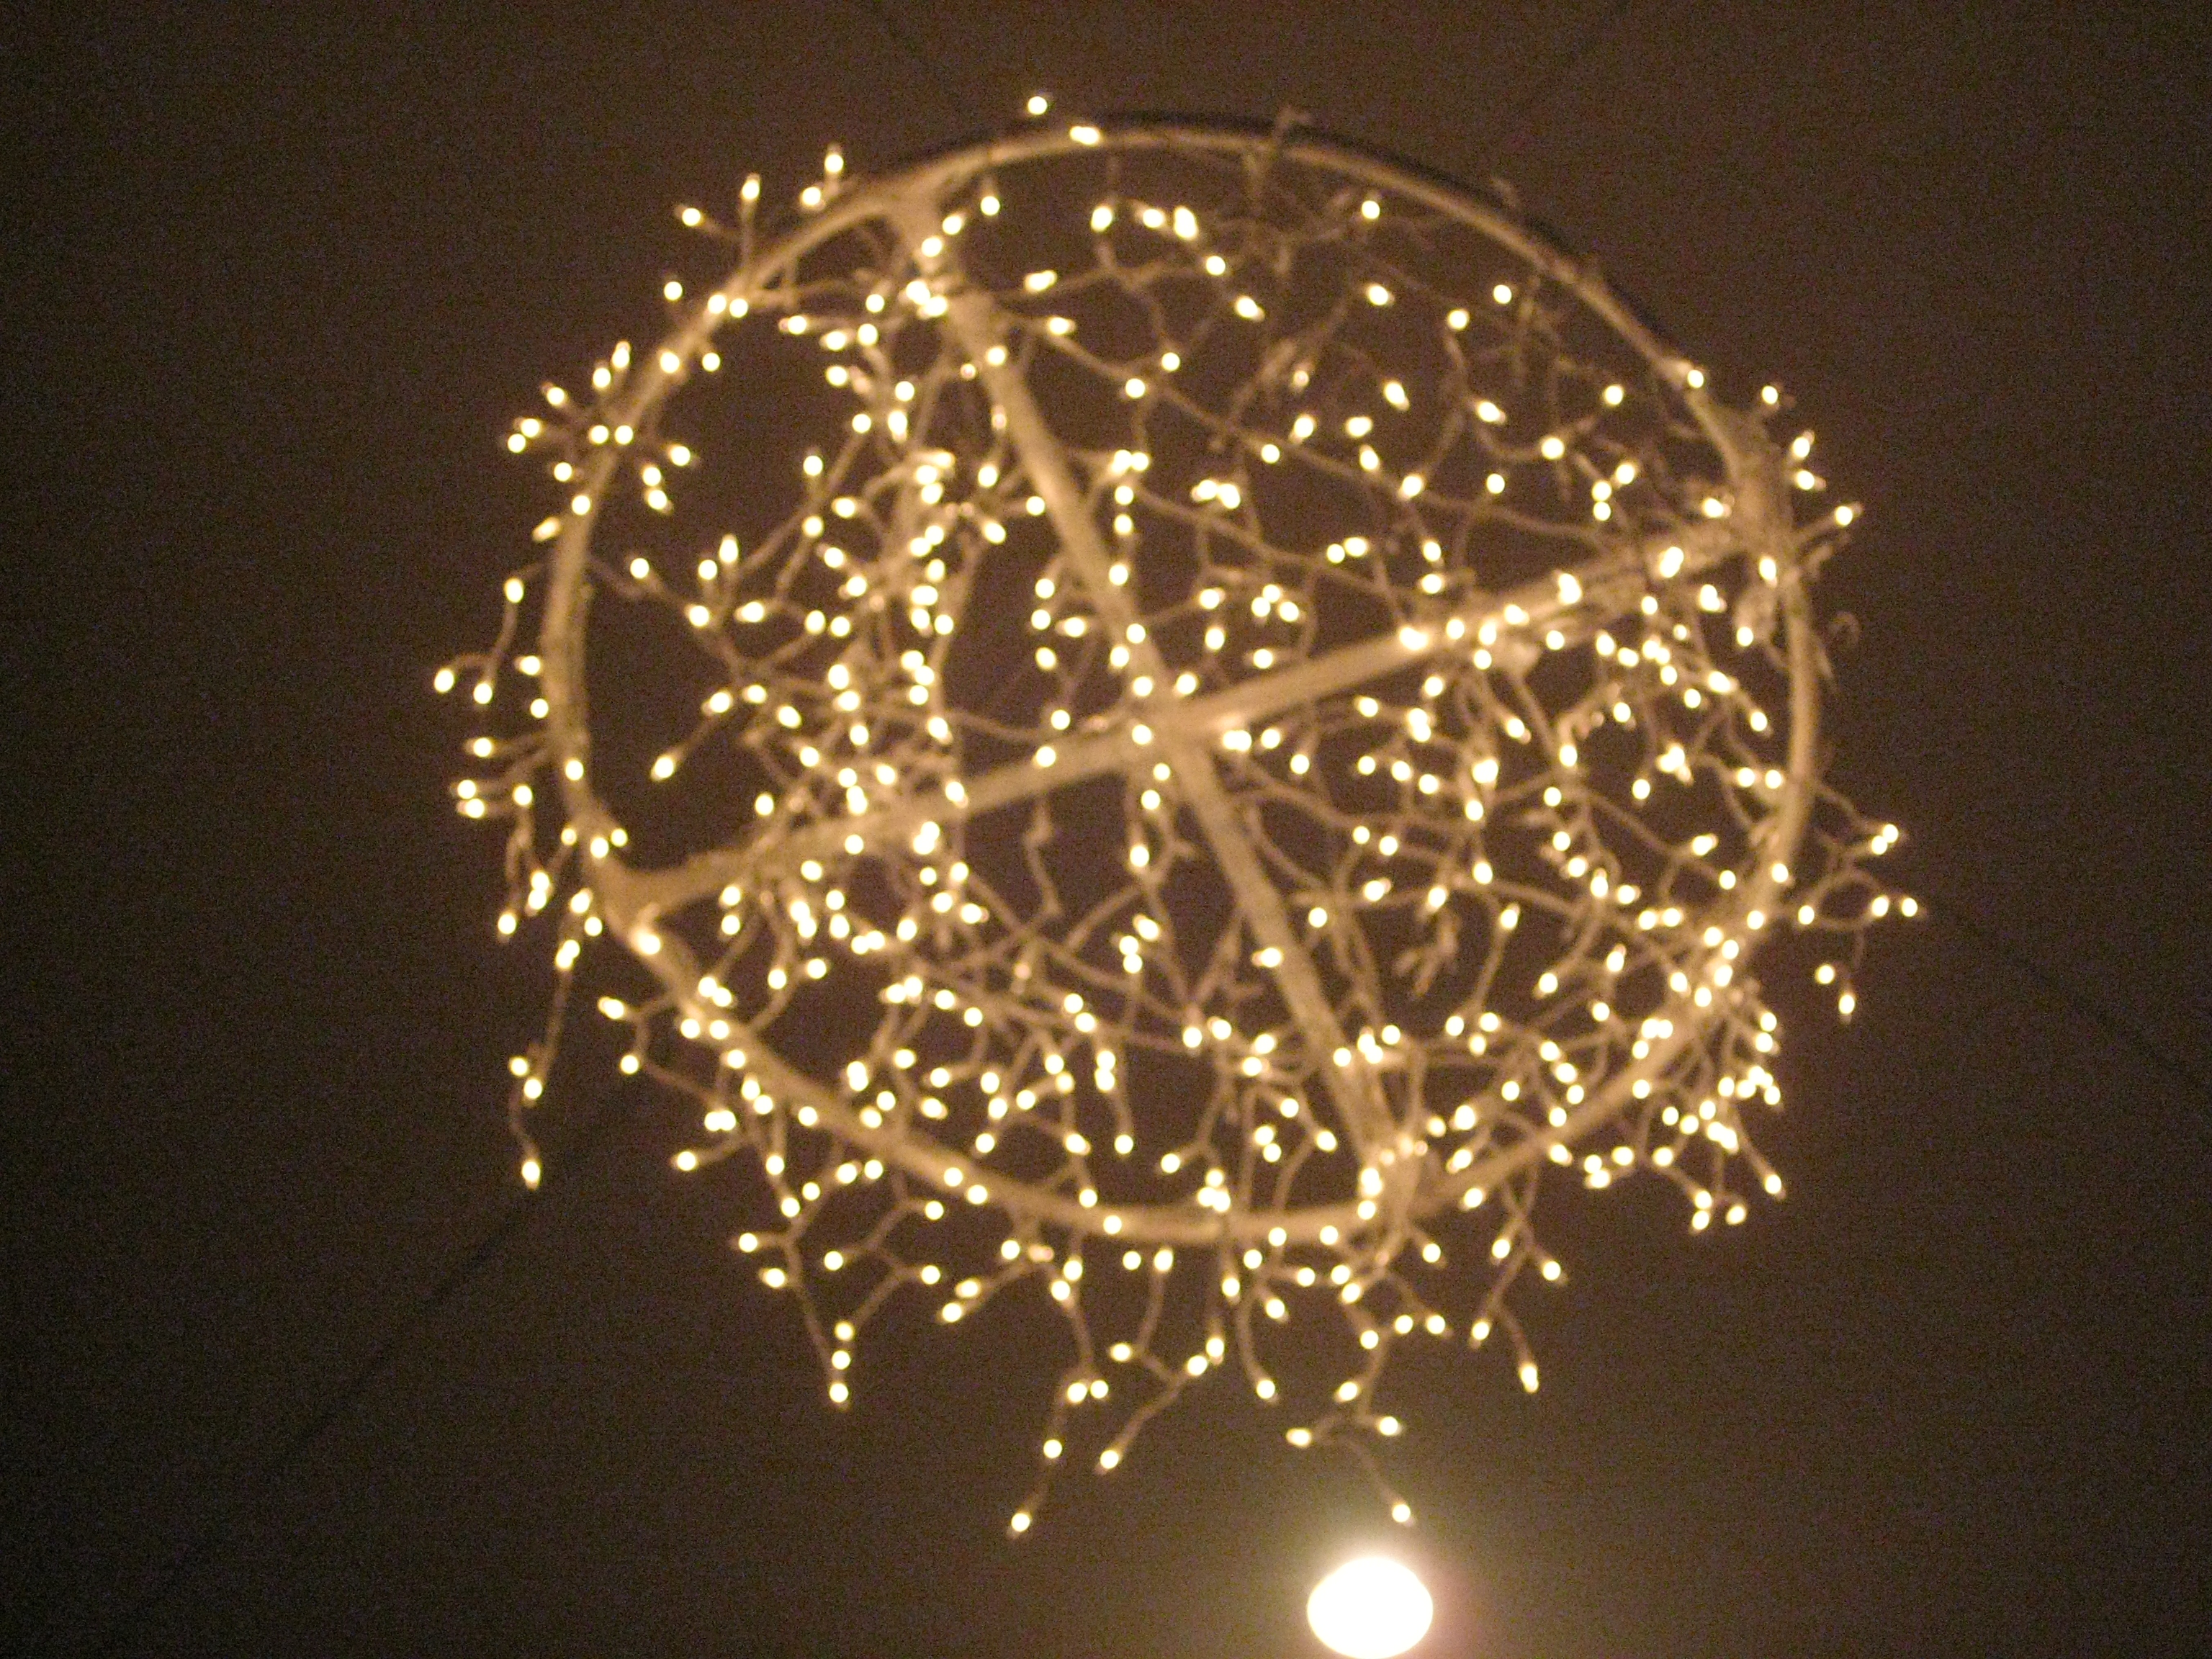 Cool homemade chandelier by bri via flickr homemade for Cool diy chandeliers